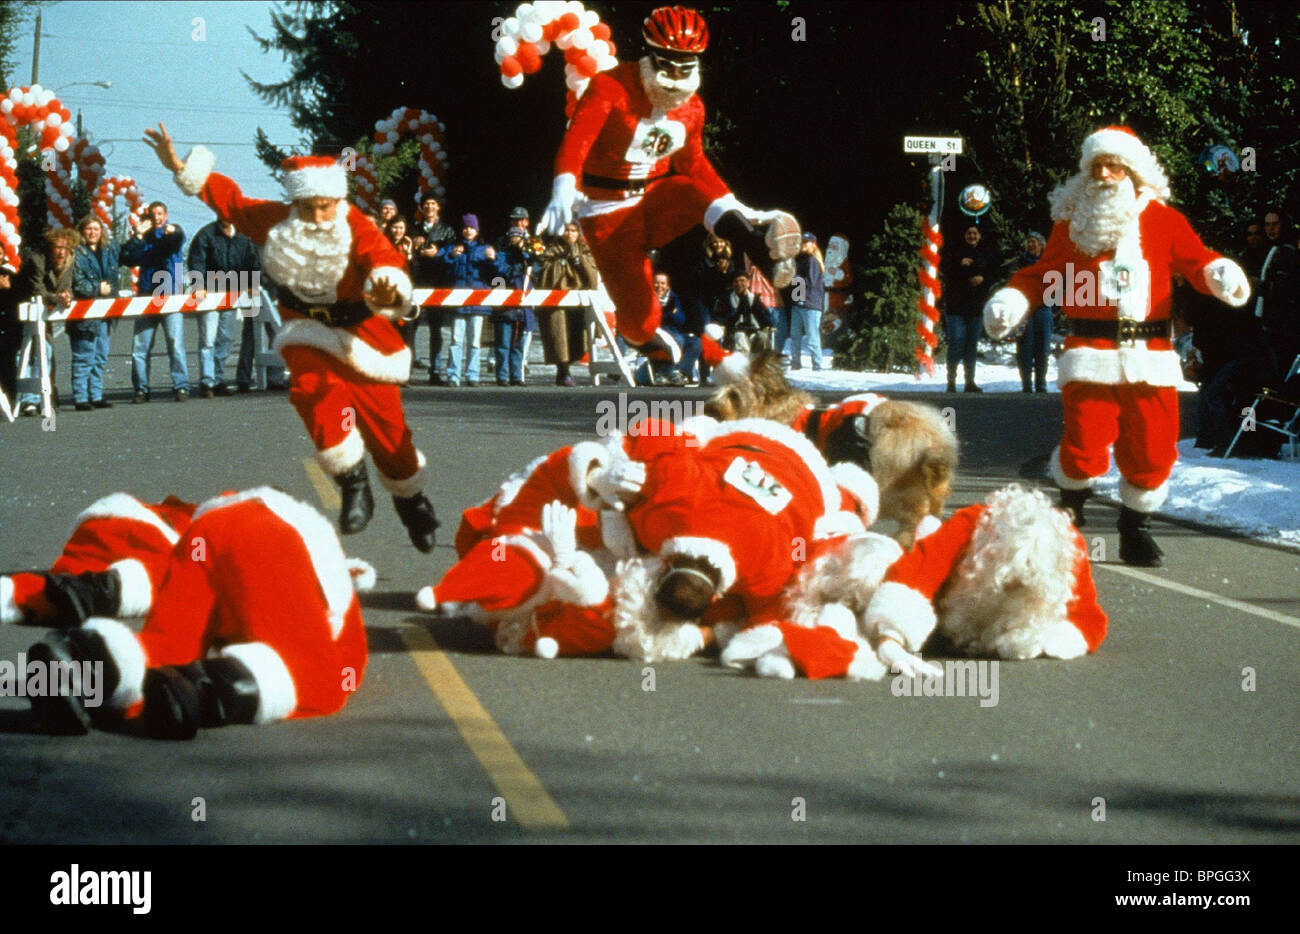 Ill Be Home For Christmas 1998.Santa Claus Race I Ll Be Home For Christmas 1998 Stock